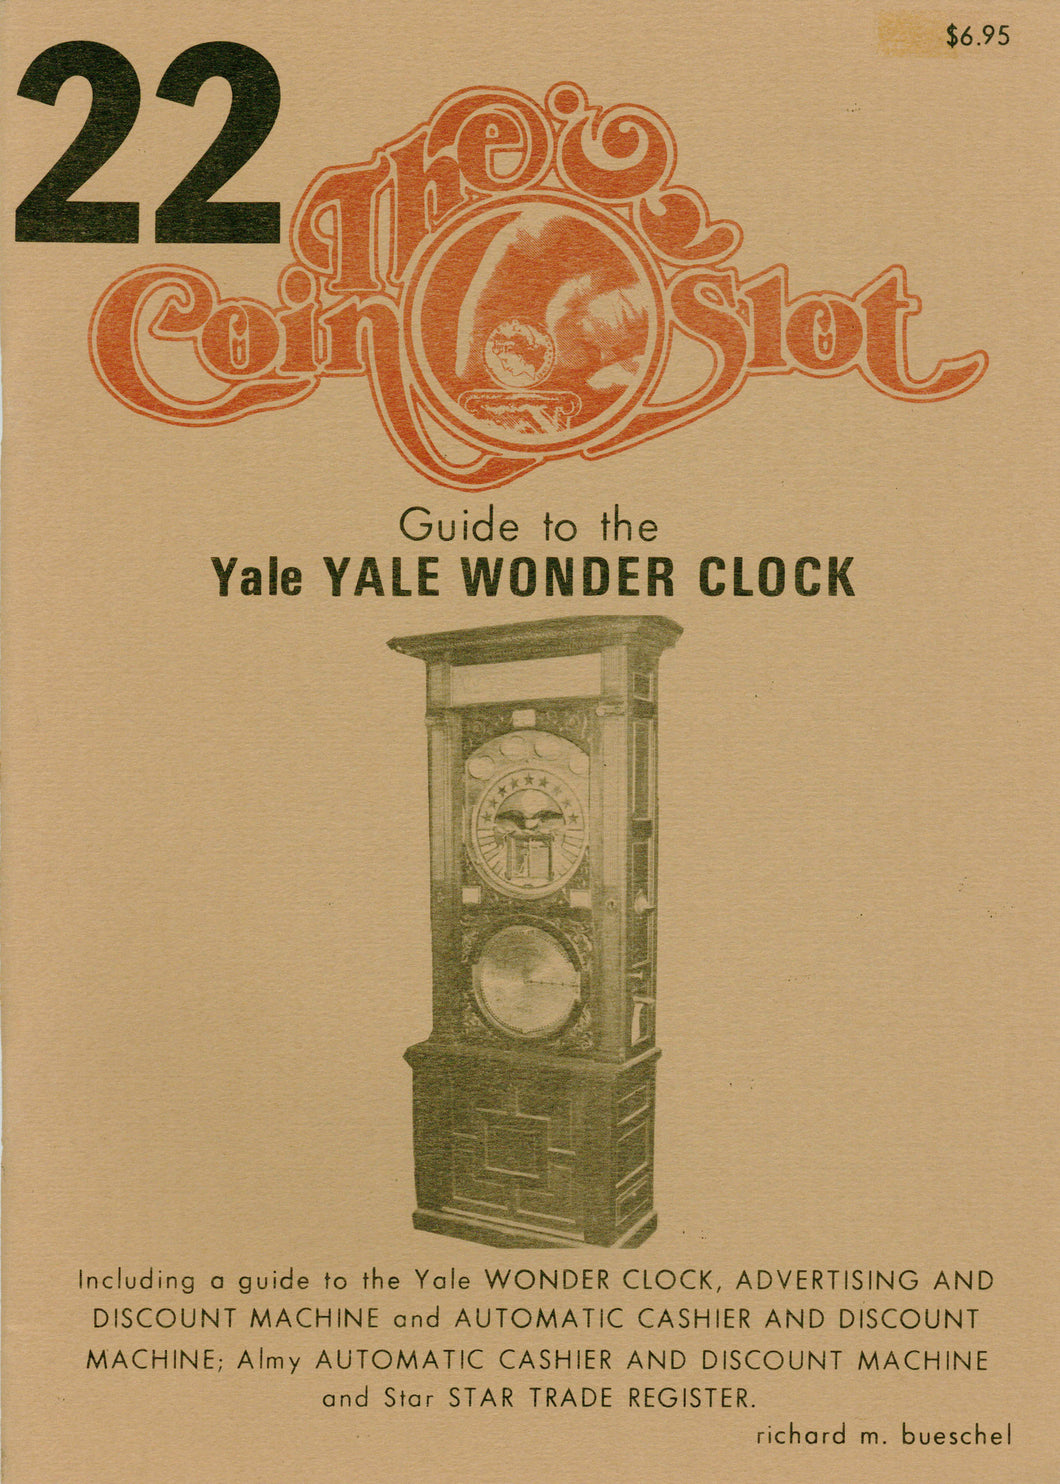 Coin Slot #22. Guide to the Yale Wonder Clock